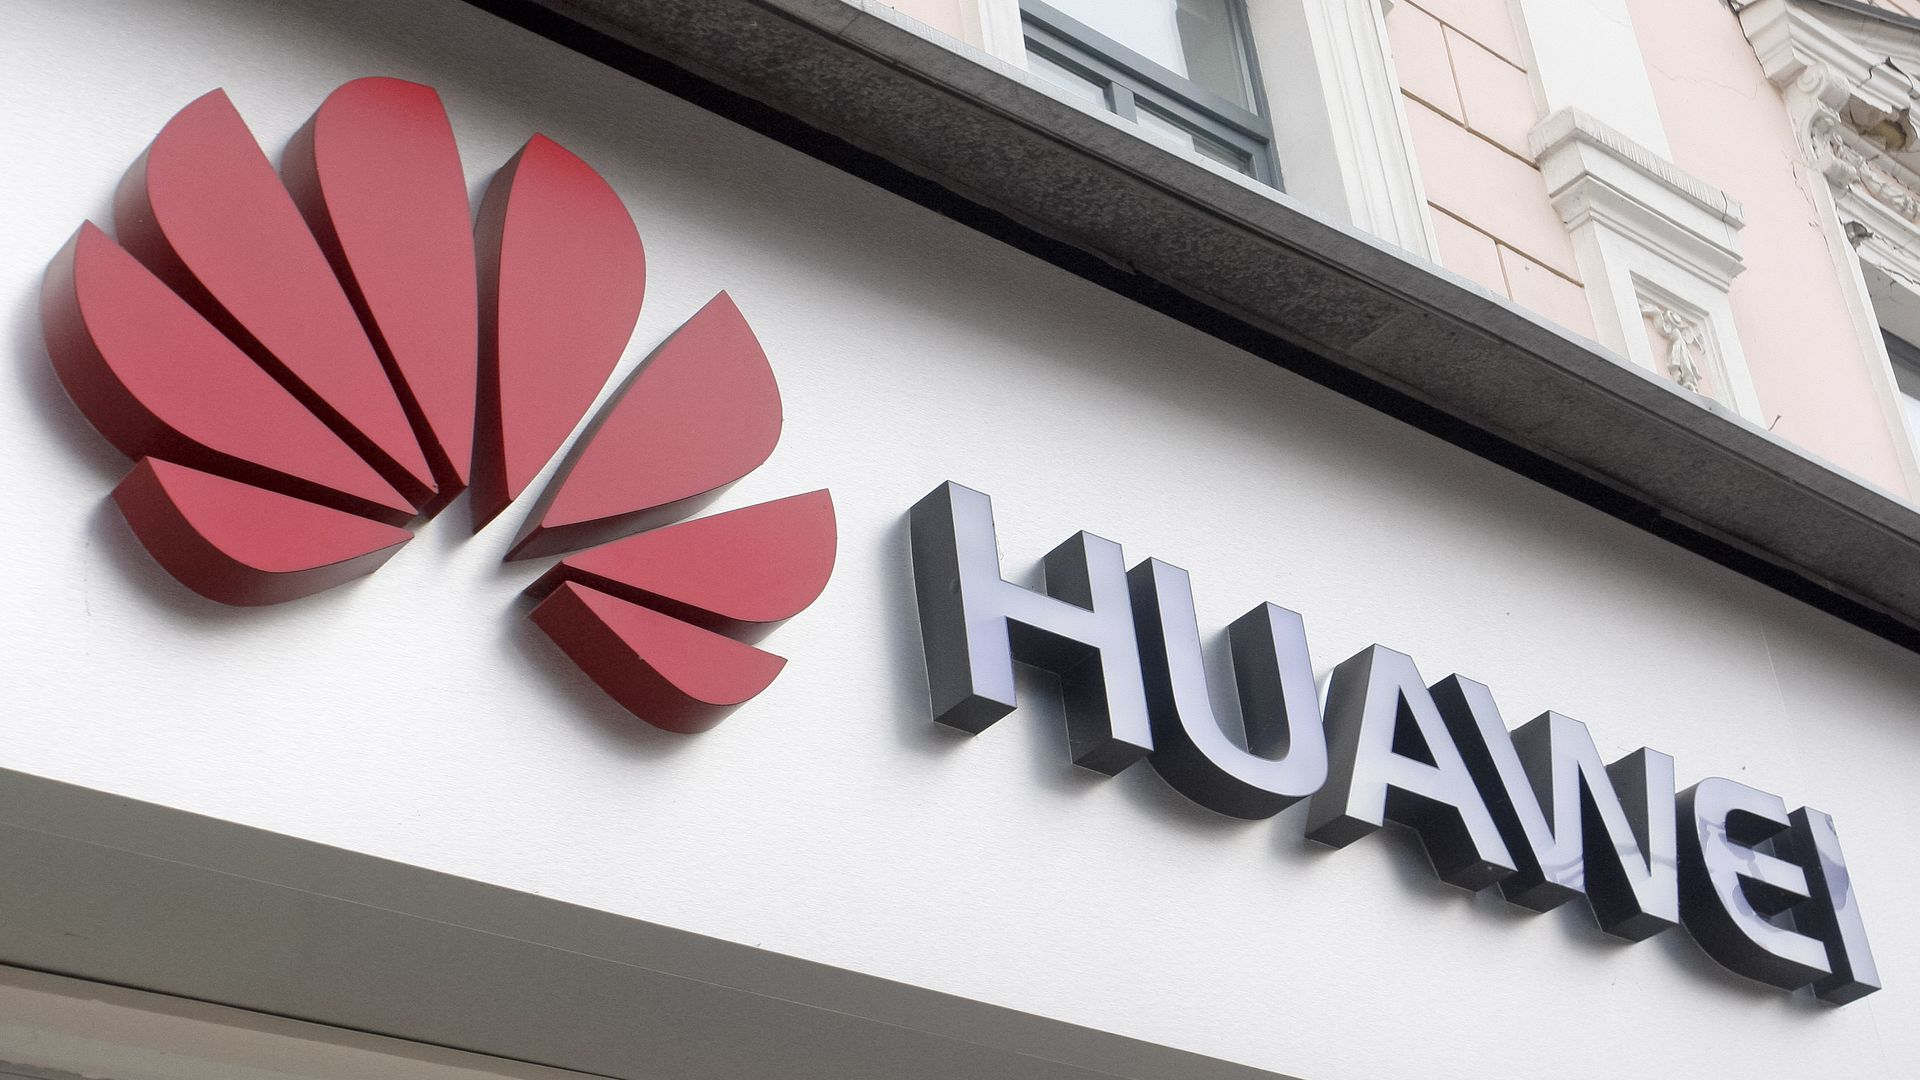 The Huawei logo affixed to a buiding.